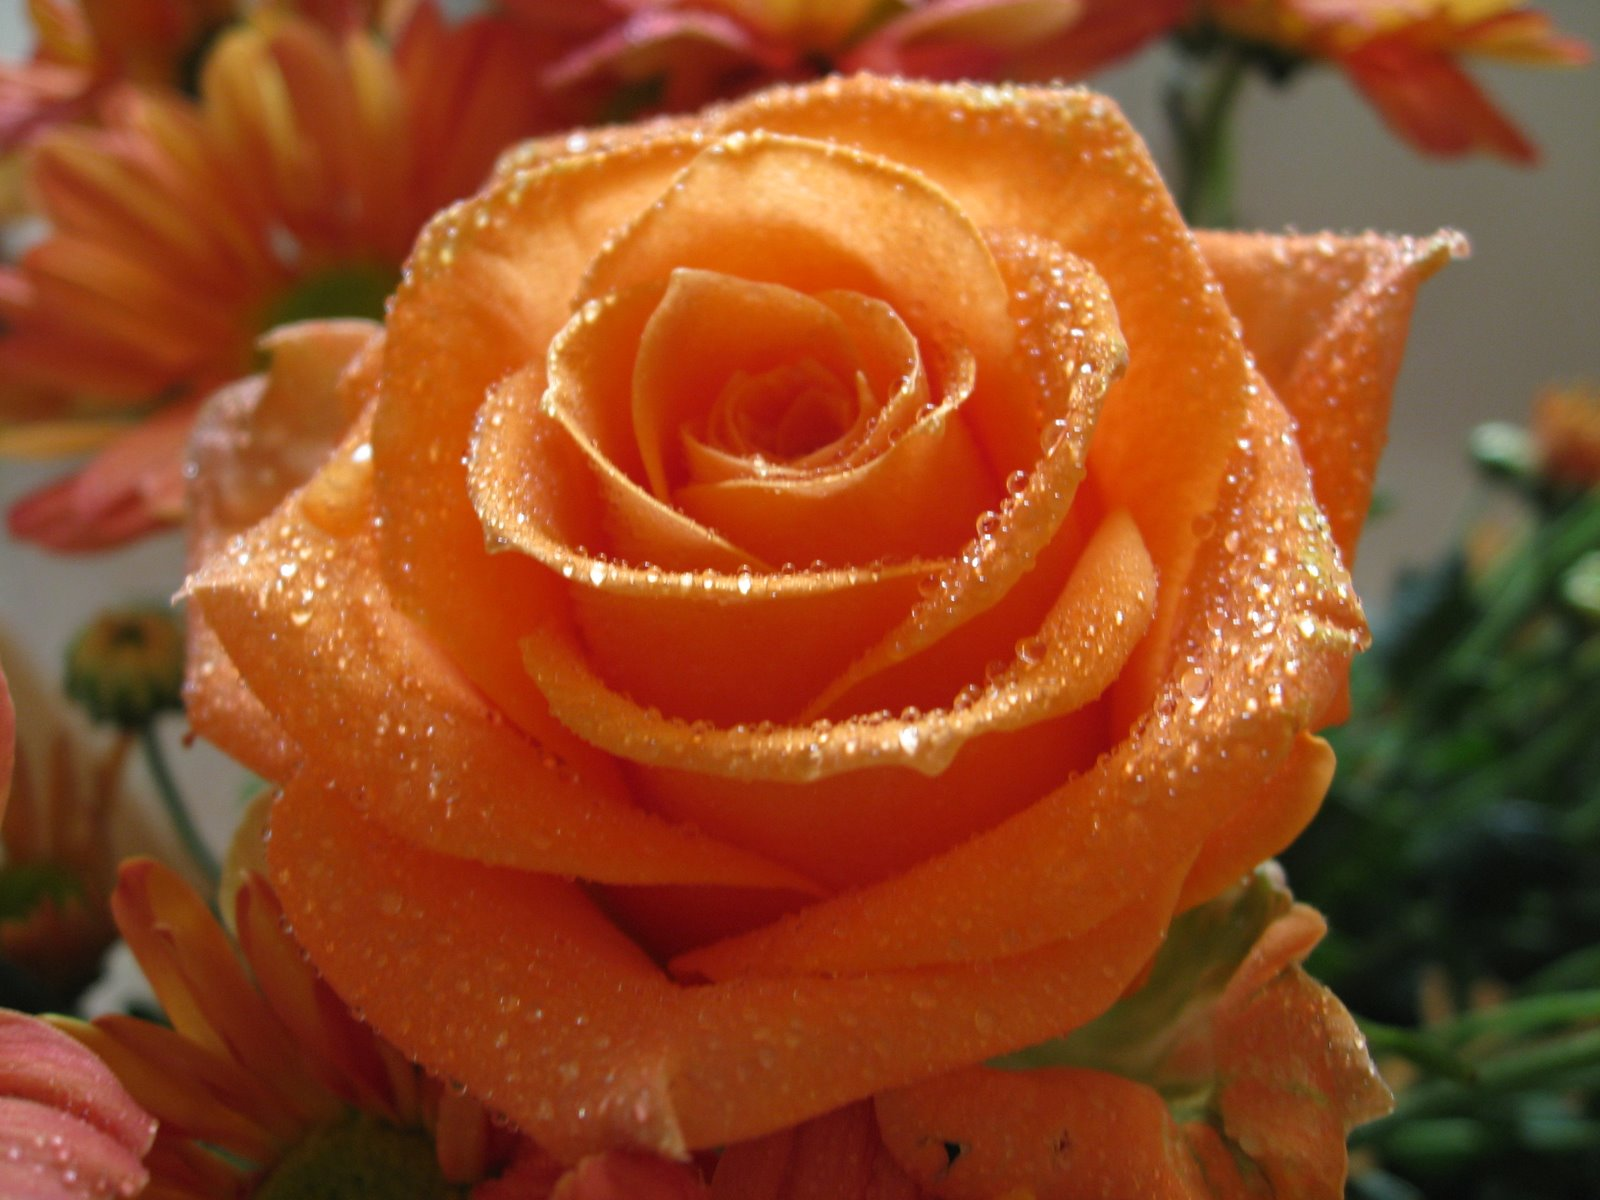 http://4.bp.blogspot.com/-so3yO9SLdsU/TfZTBWVjWLI/AAAAAAAAAJs/lpy0L3ssyA8/s1600/Orange+Flowers+Wallpaper9.jpg